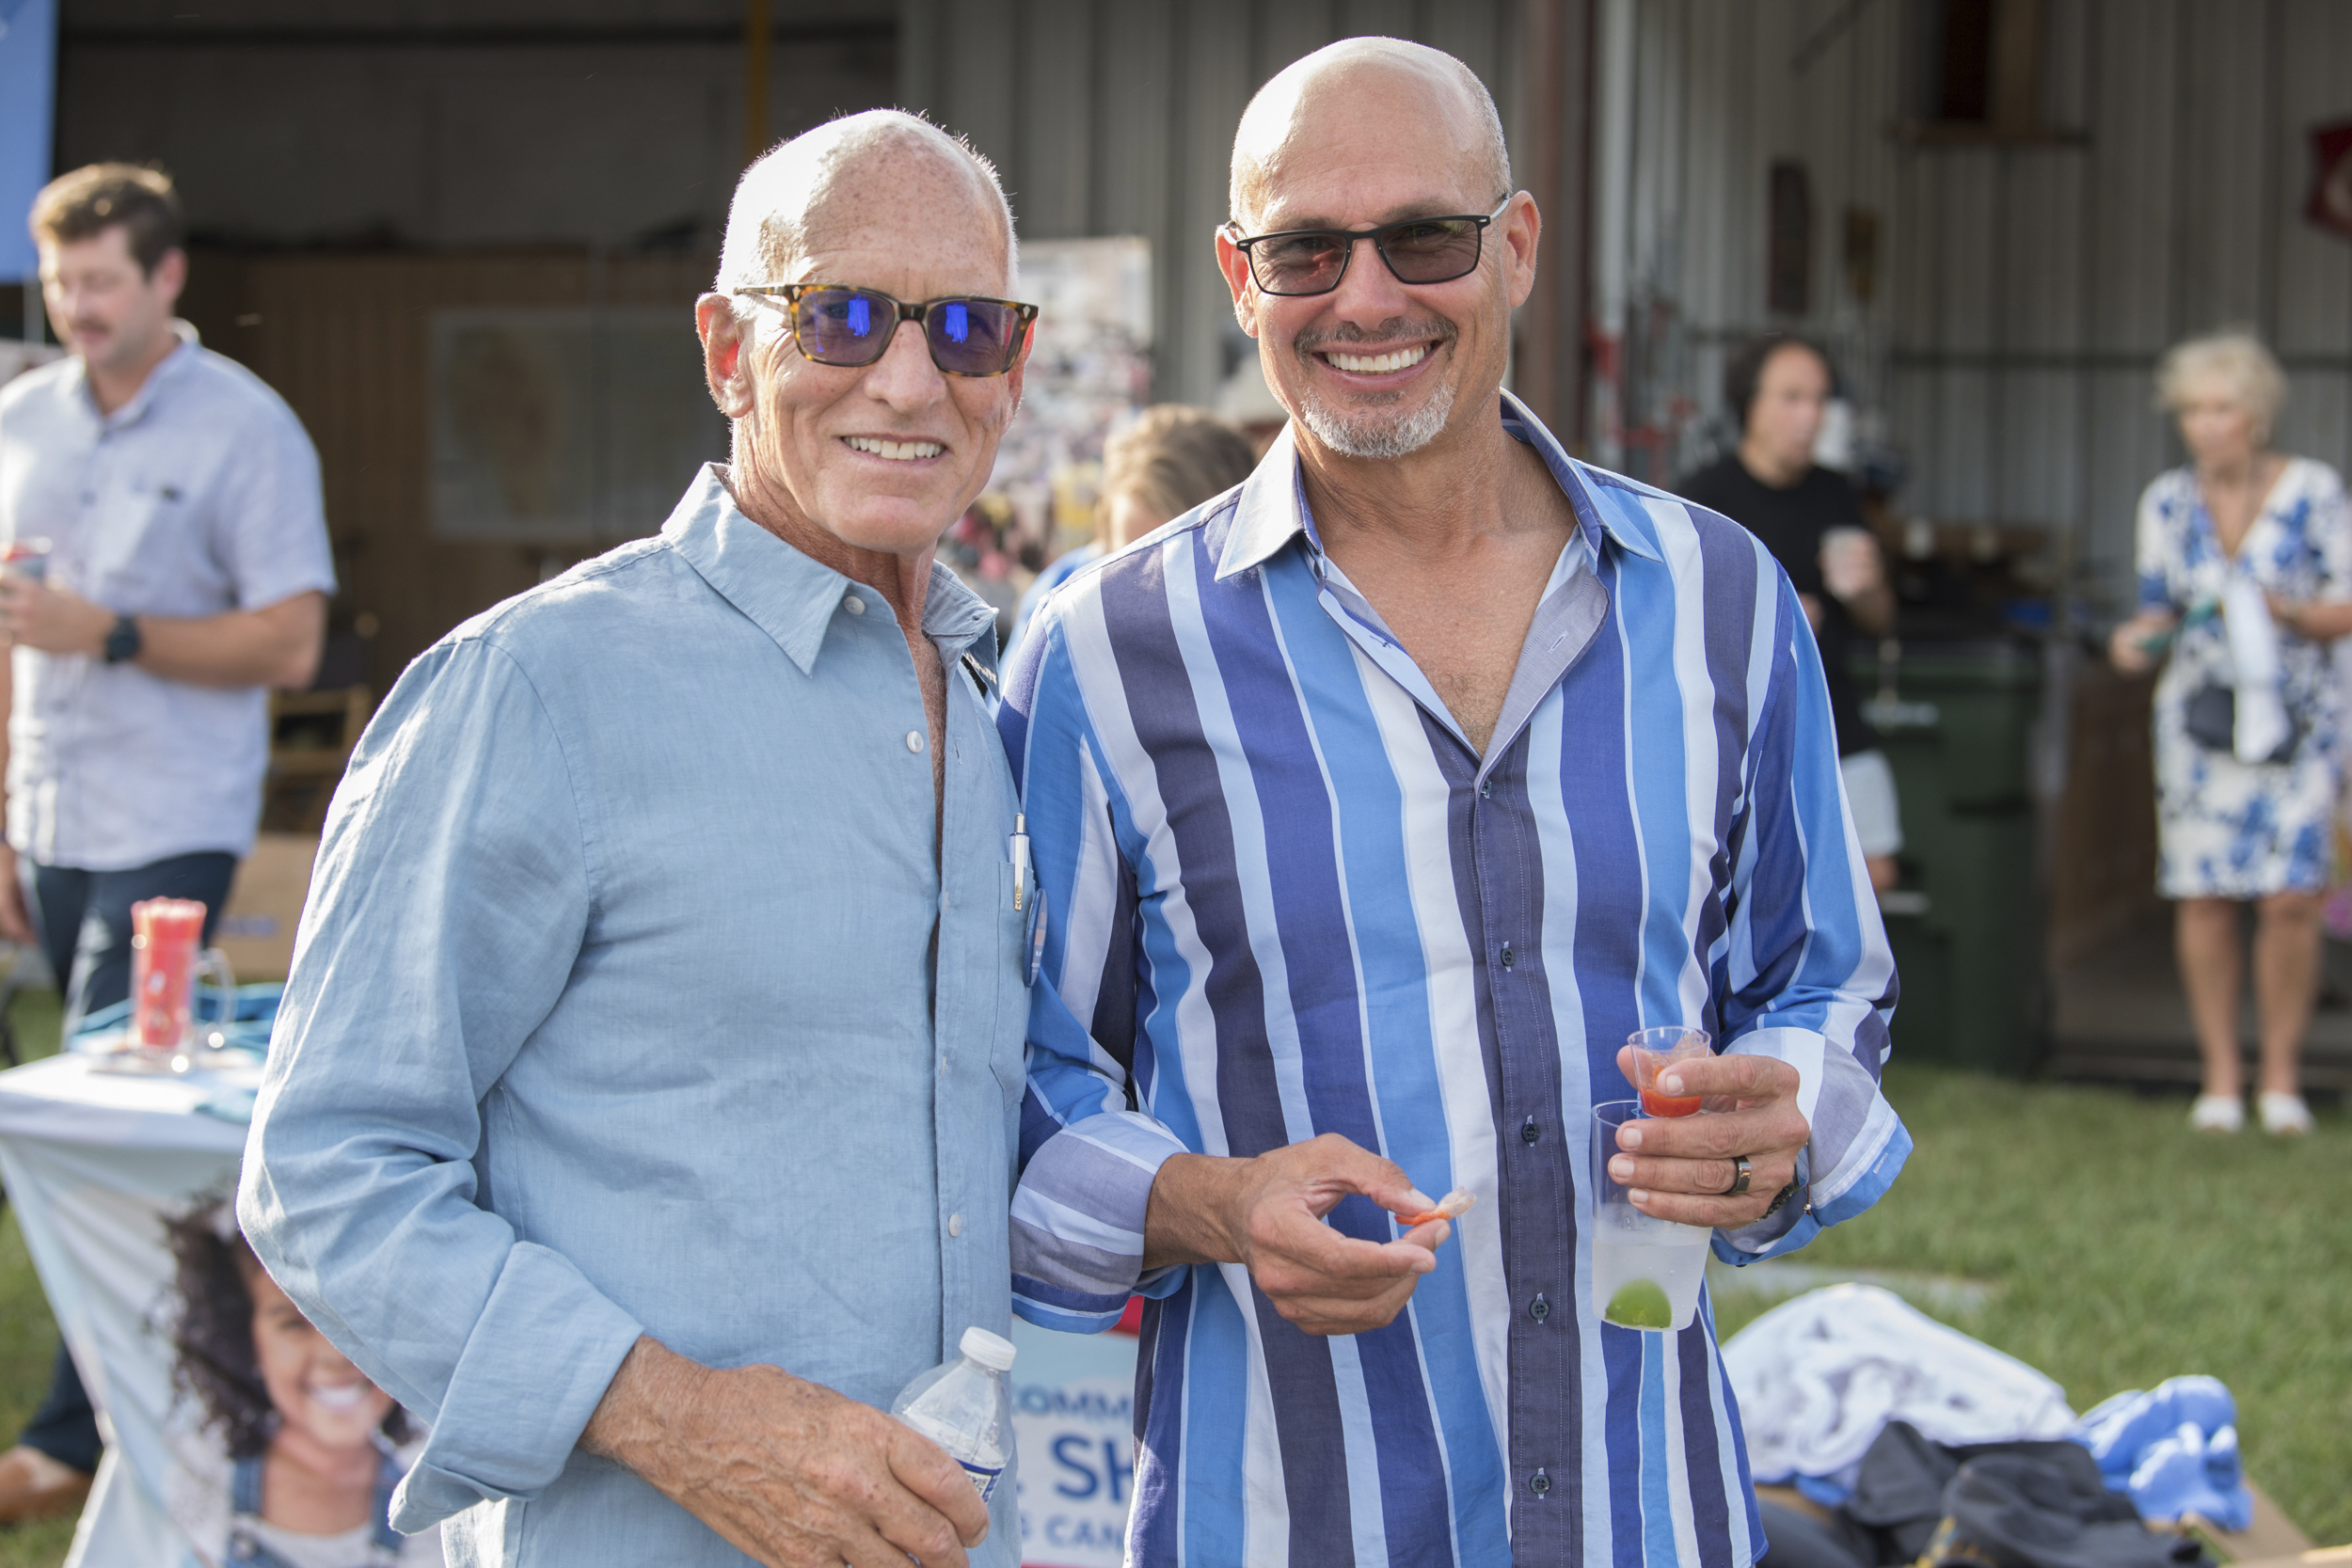 Jonathan Glynn and Kent Feuerring at the 4th Annual Hamptons Artists for Haiti Benefit Bash on August 7.          Joelle Wiggins